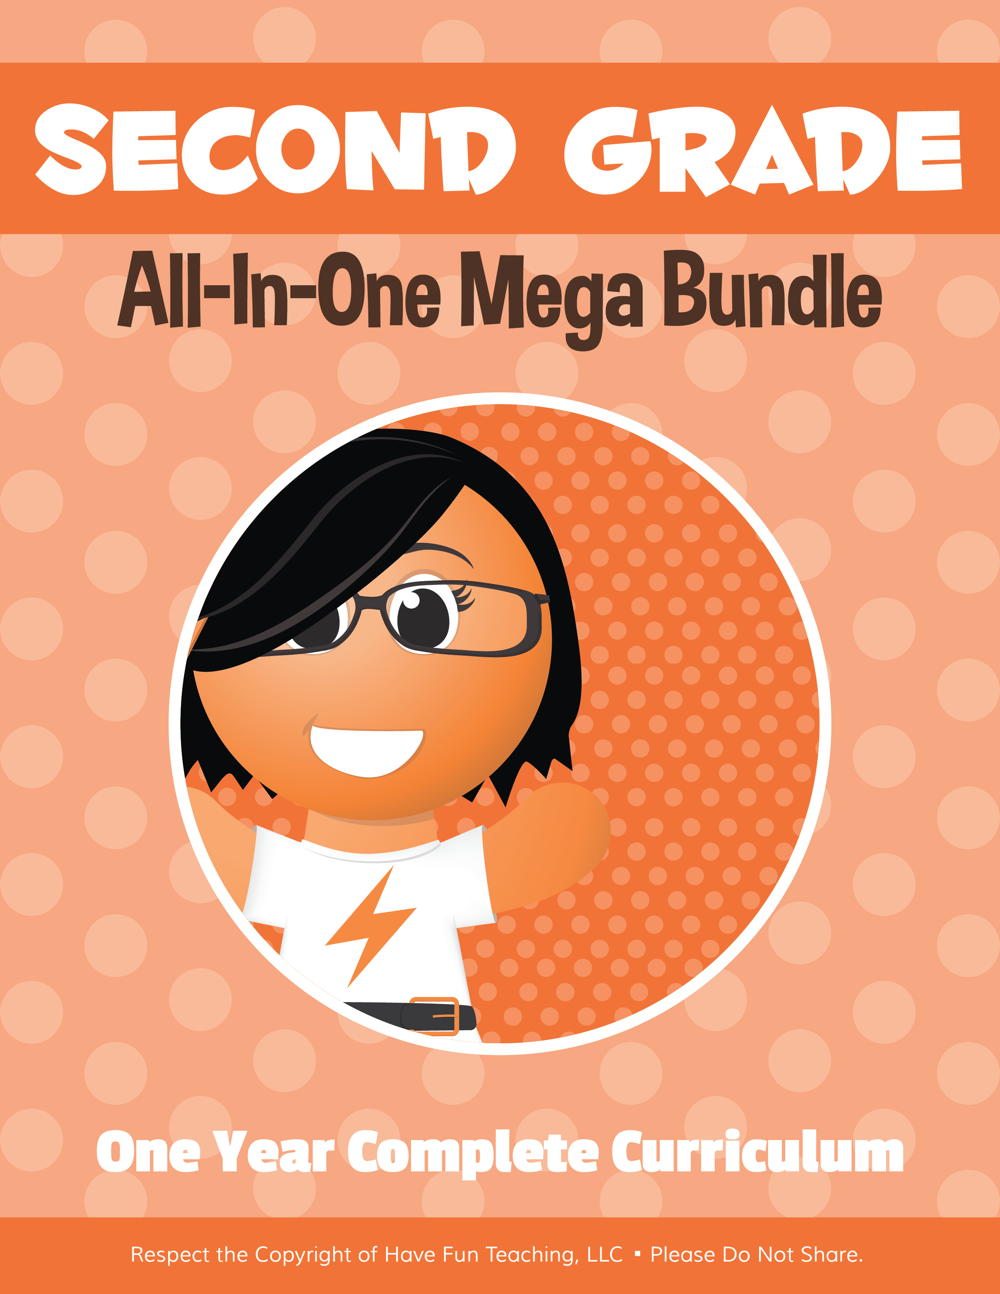 Second Grade One Year Curriculum